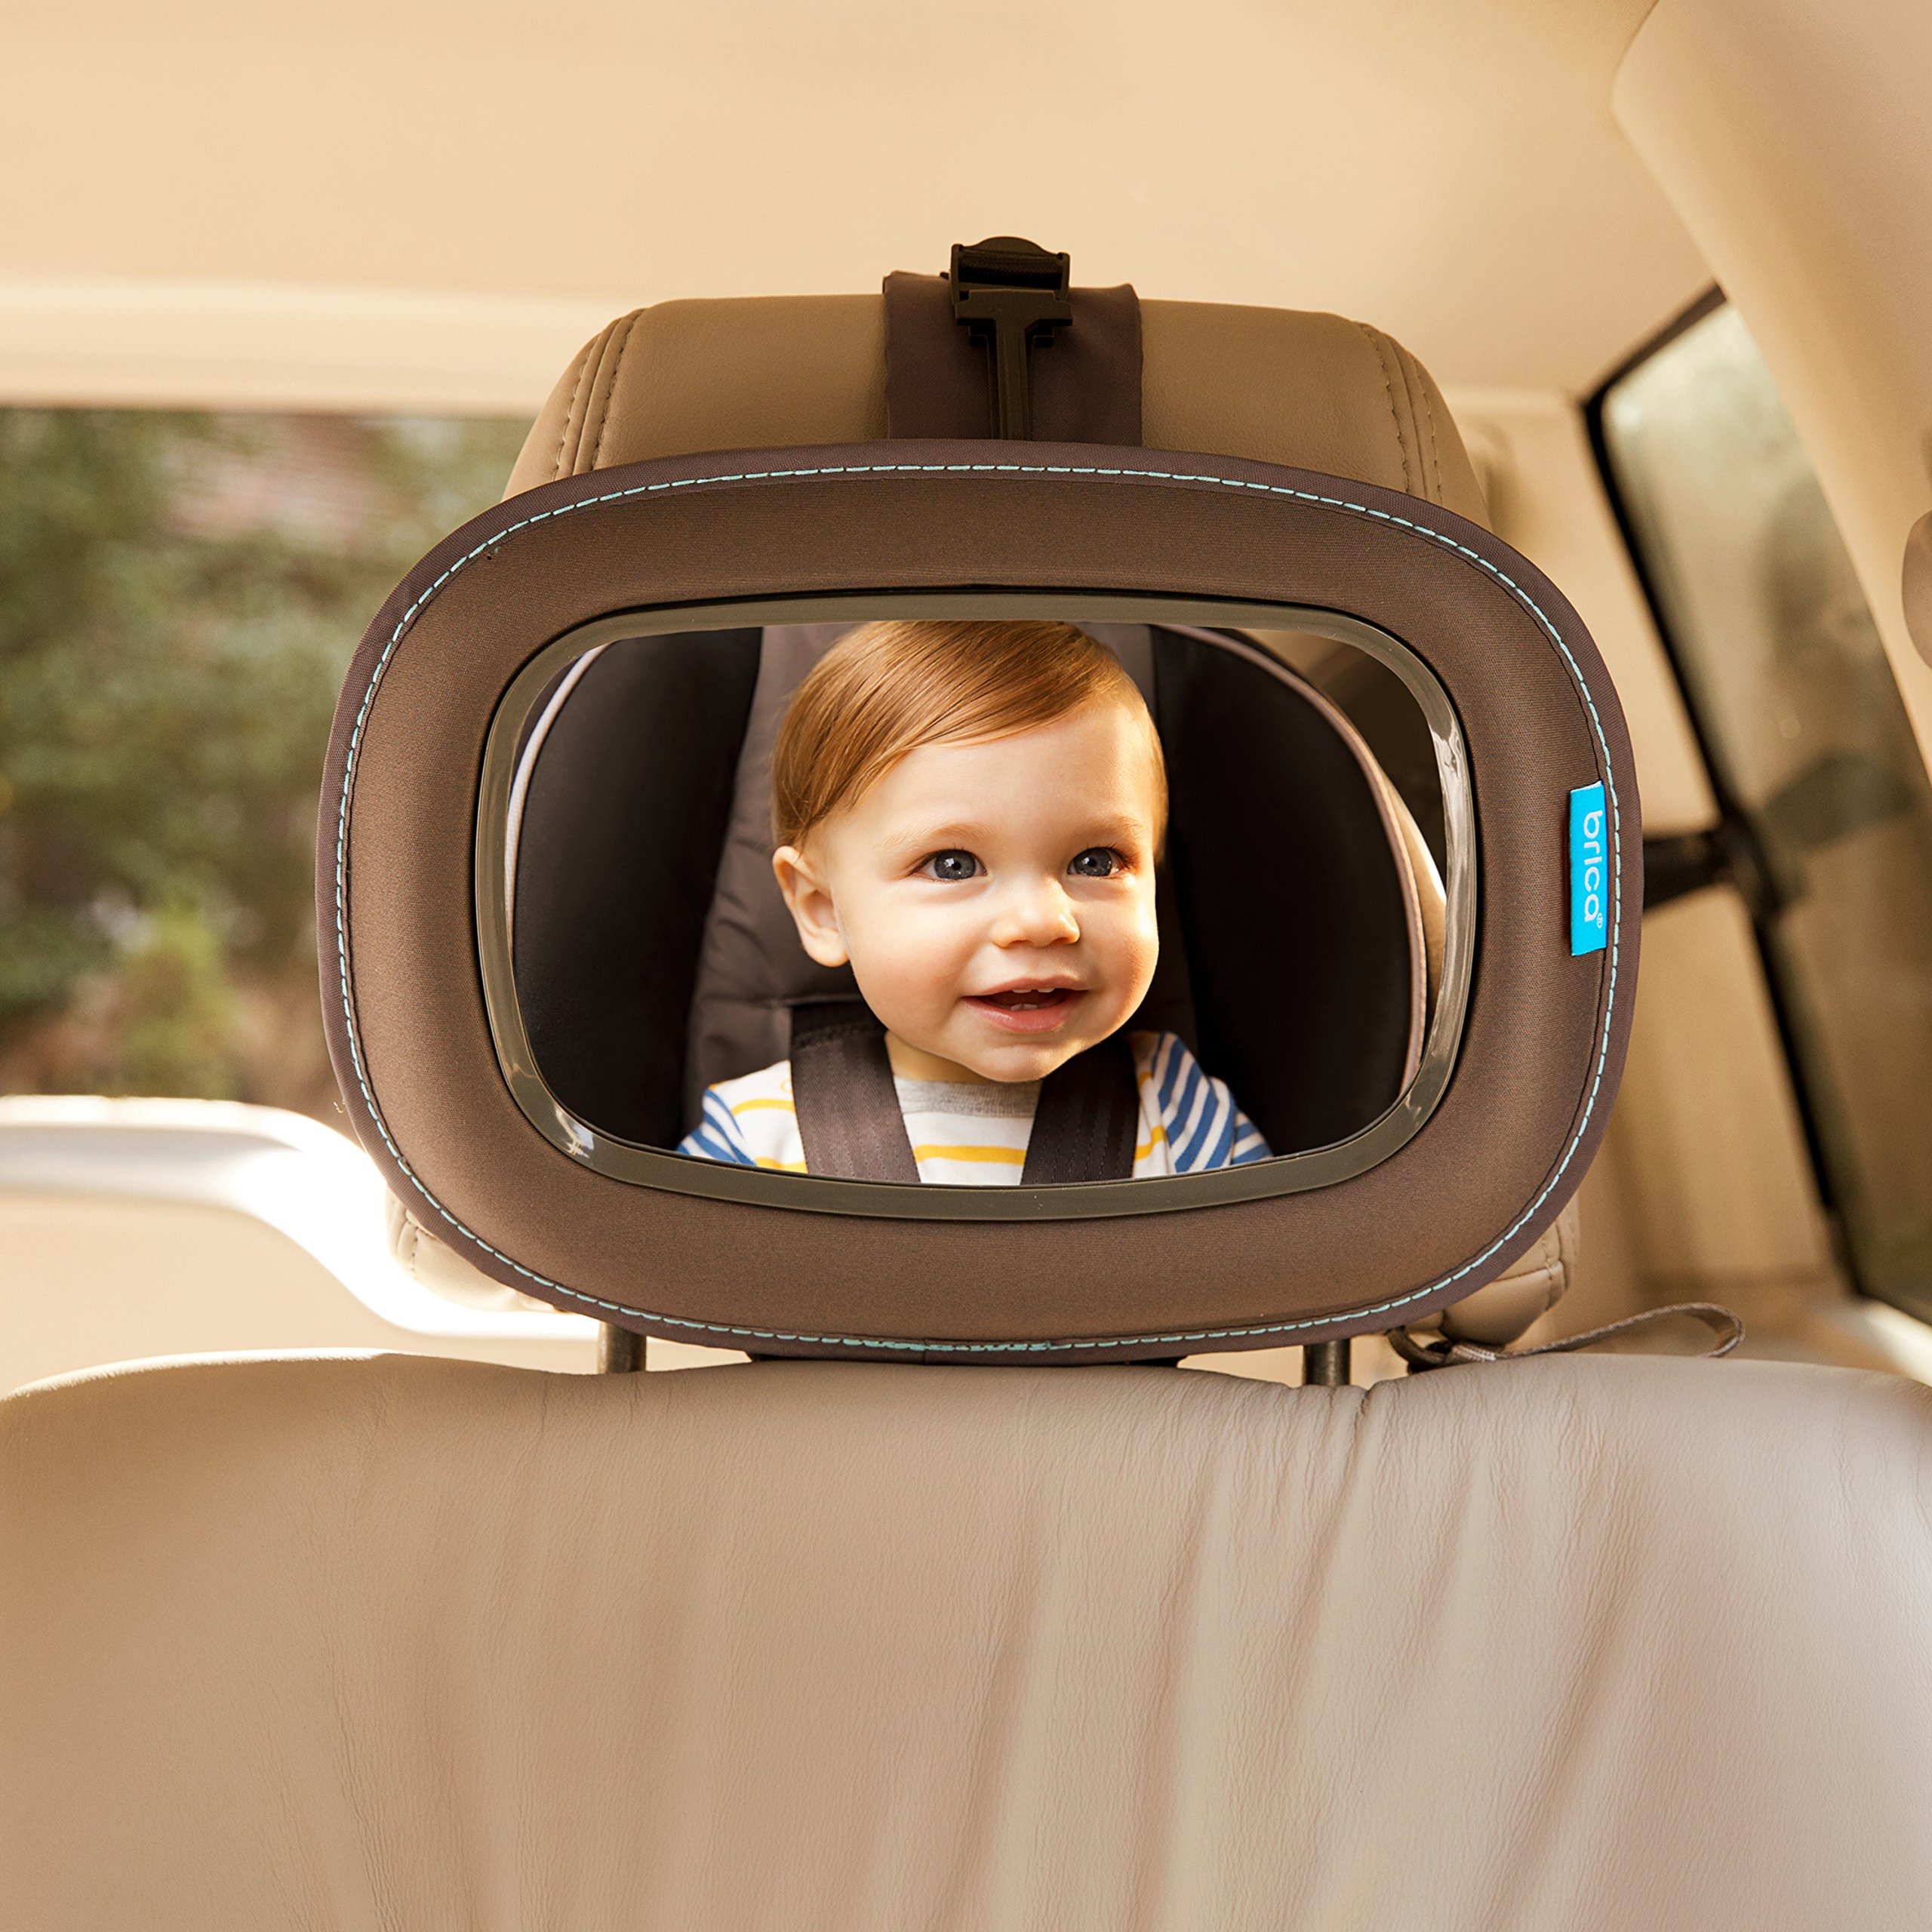 Brica Vivid Reflection Baby In-Sight Car Mirror, Crash Tested and Shatter Resistant by Brica (Image #4)